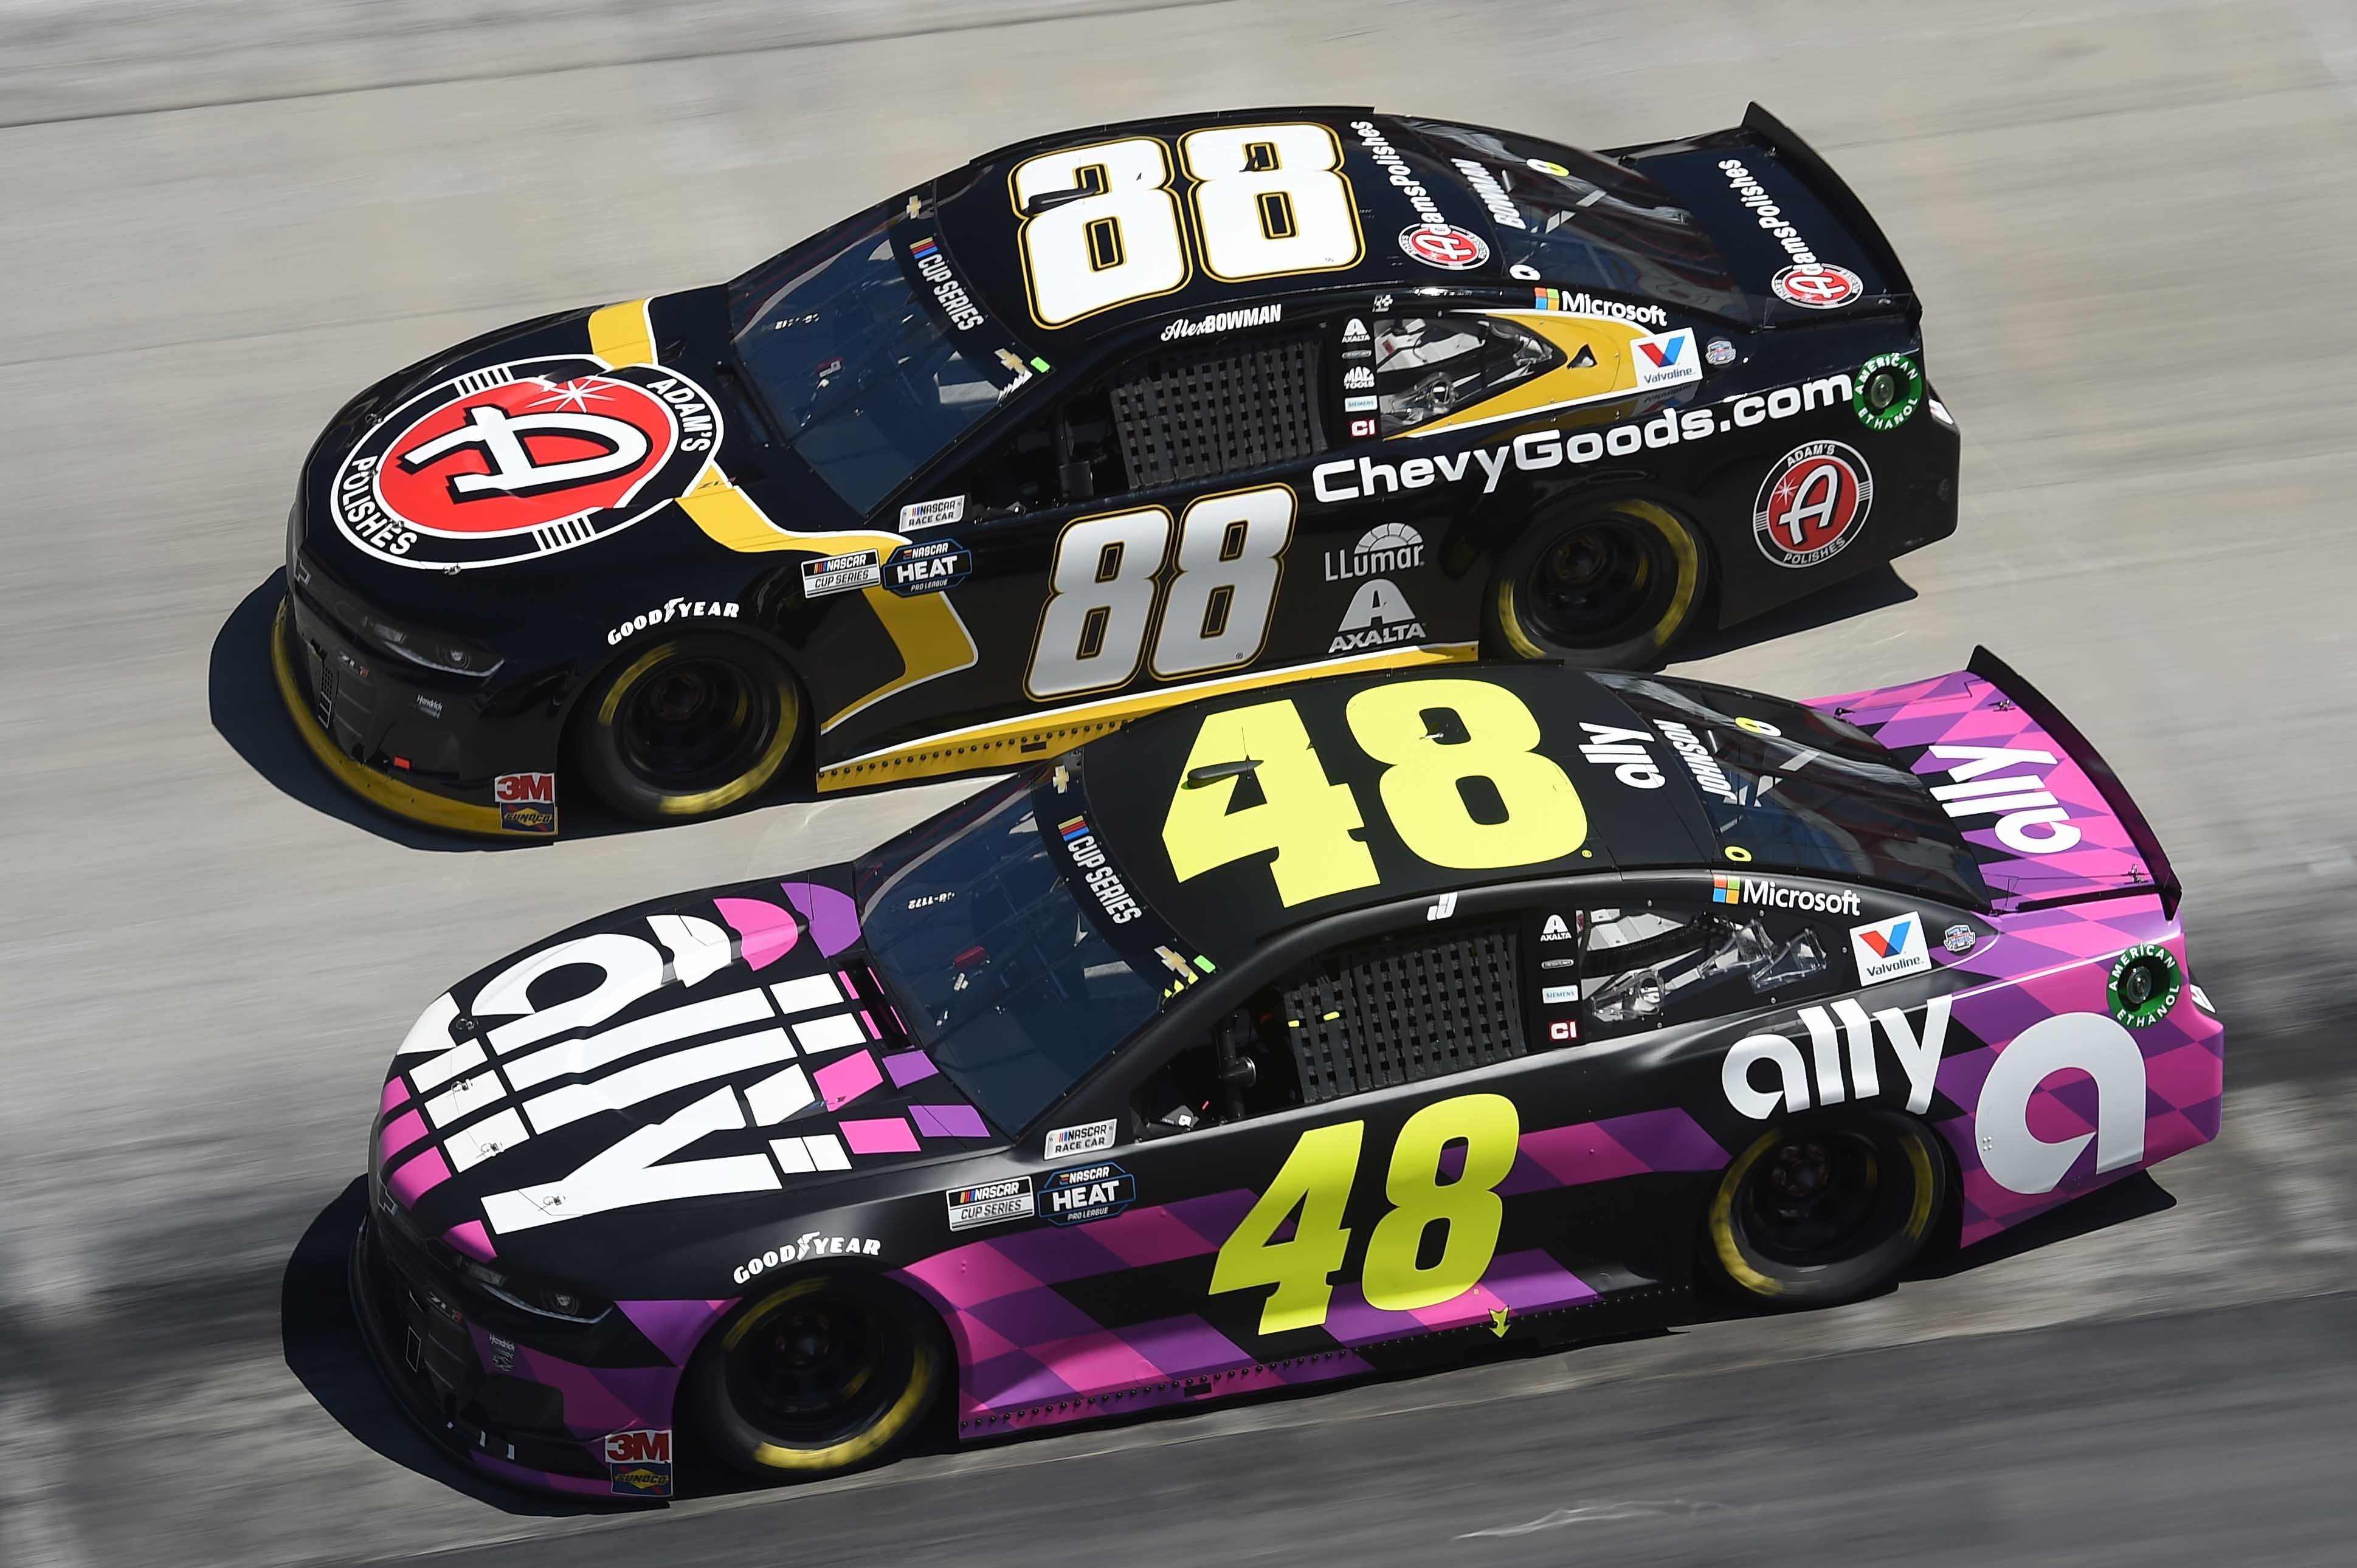 Chevrolet Advantage With The New Nascar Rules Package Denny Hamlin Says Yes Jimmie Johnson Says They Re Now On Par Racing News Nascar Rules Nascar Racing News